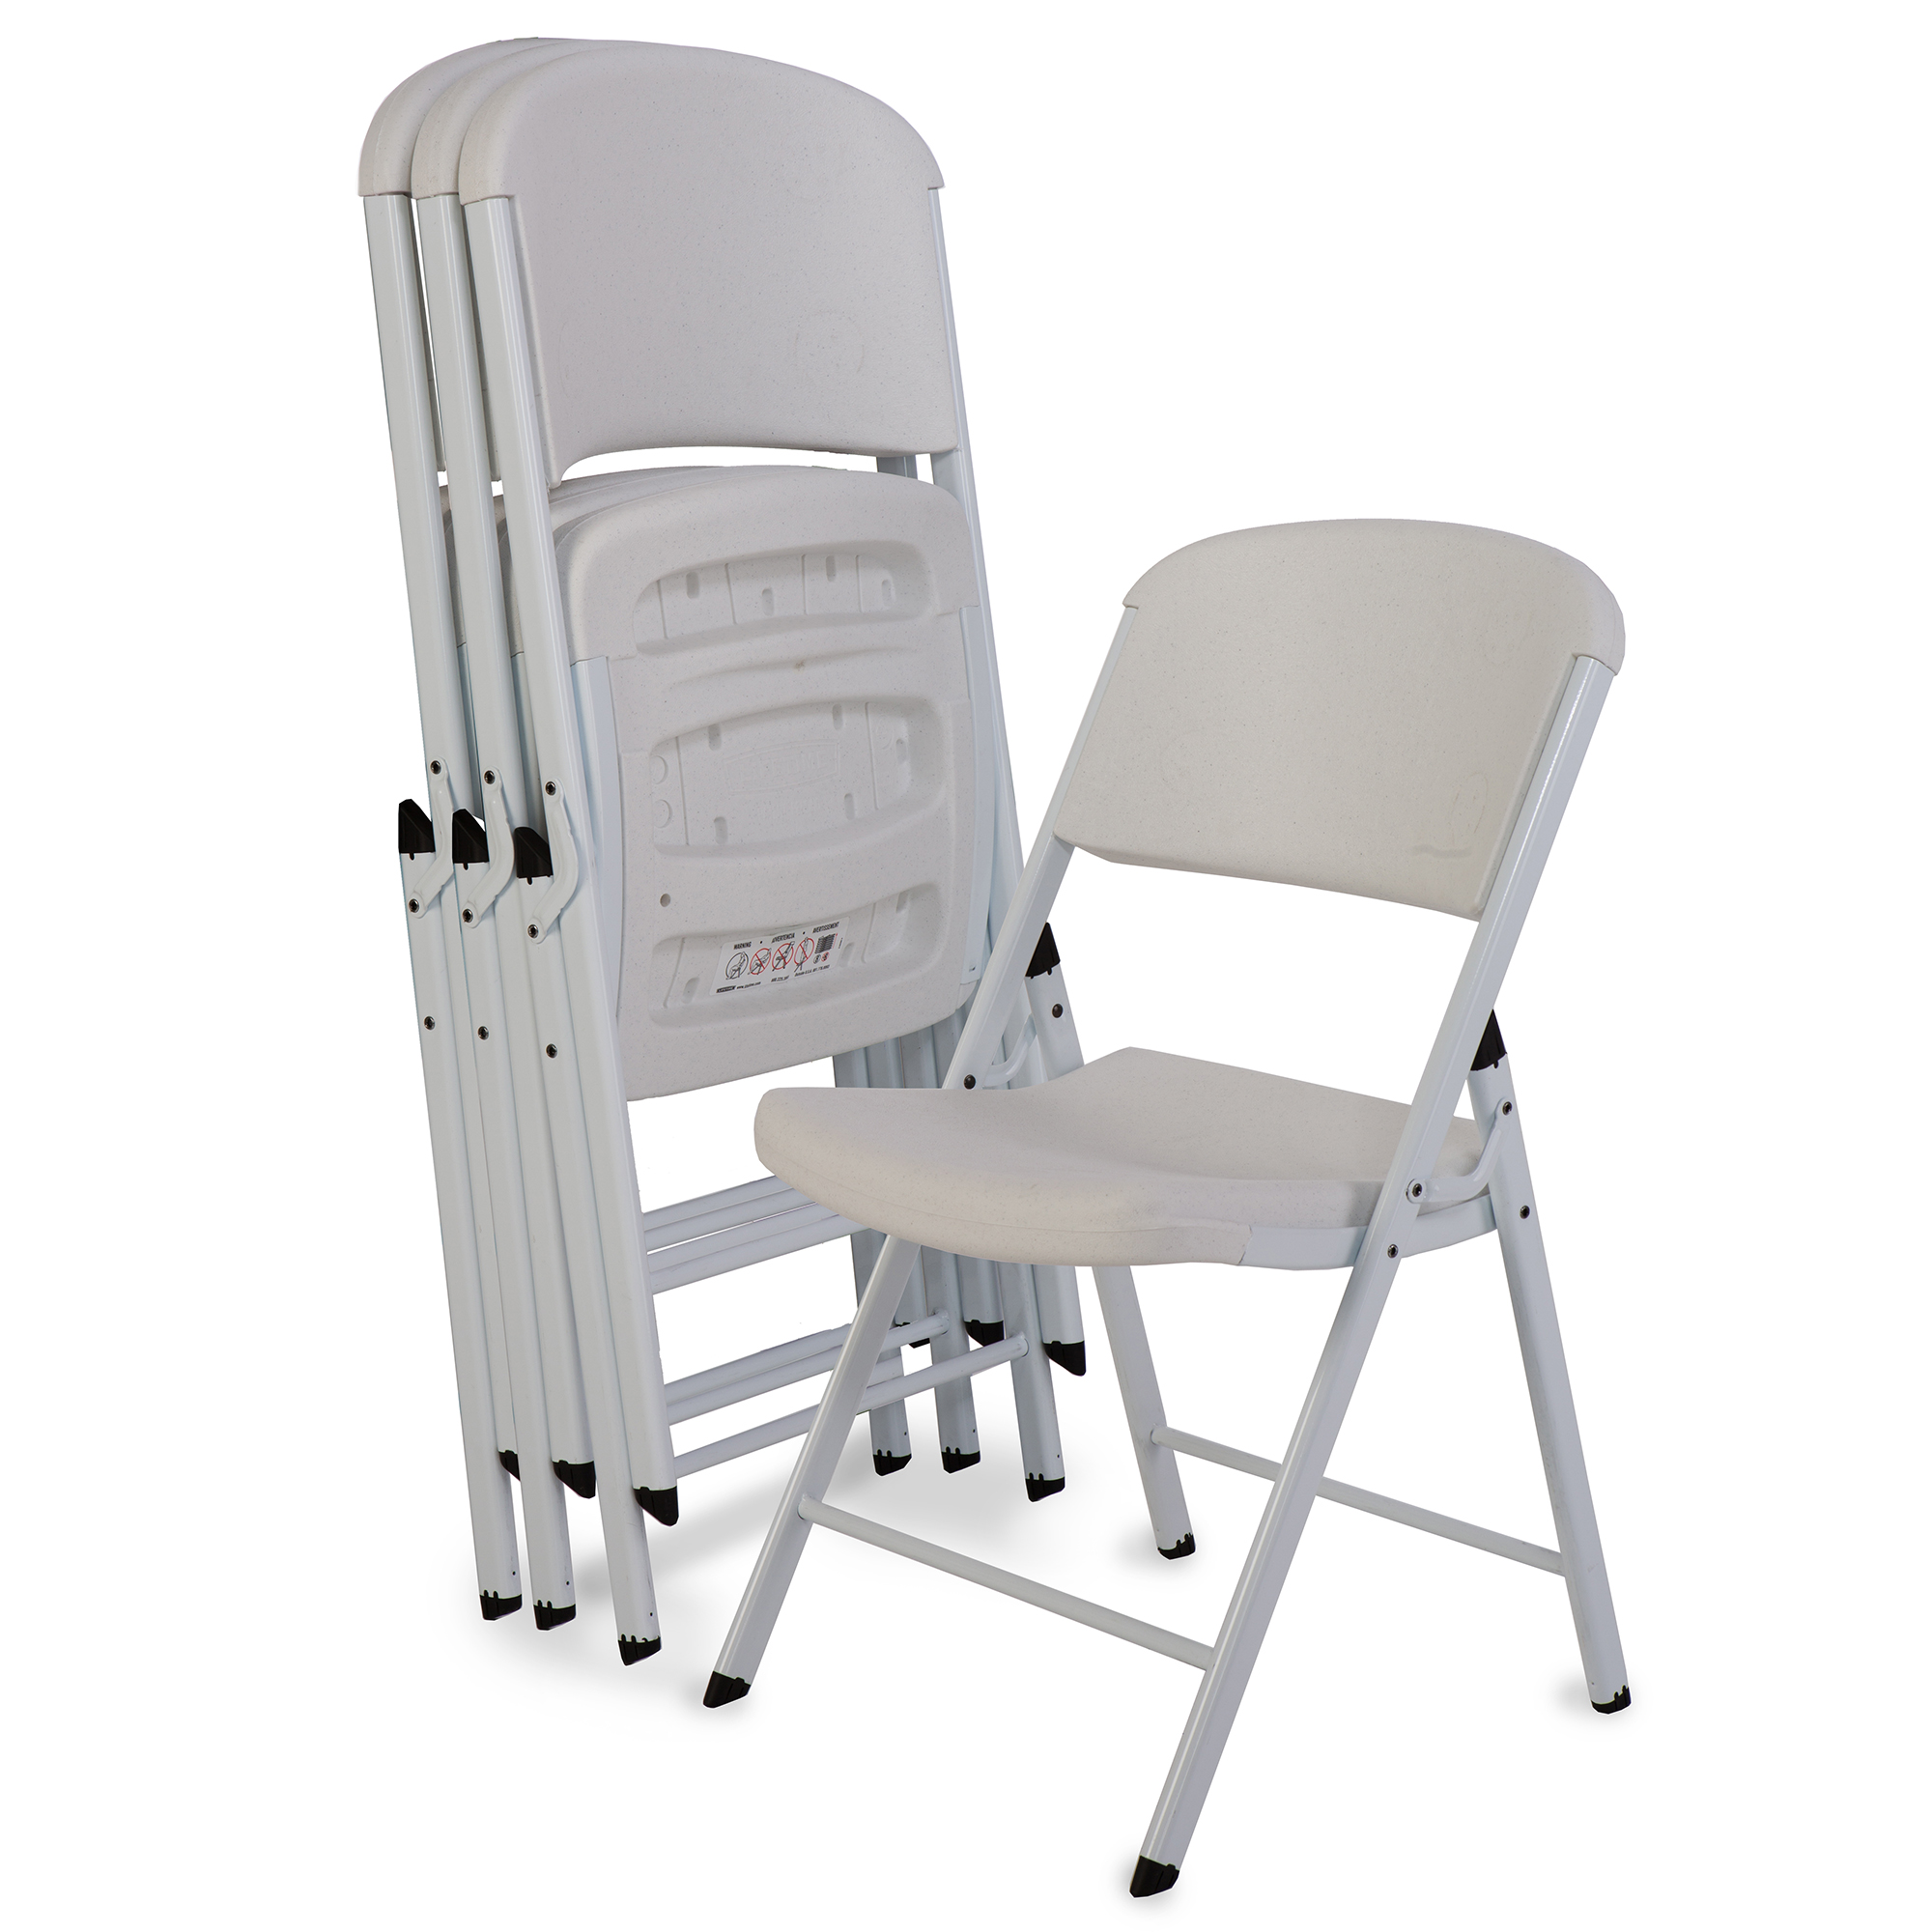 Lifetime Chair Lifetime Classic Commercial Wedding Chair White 80359